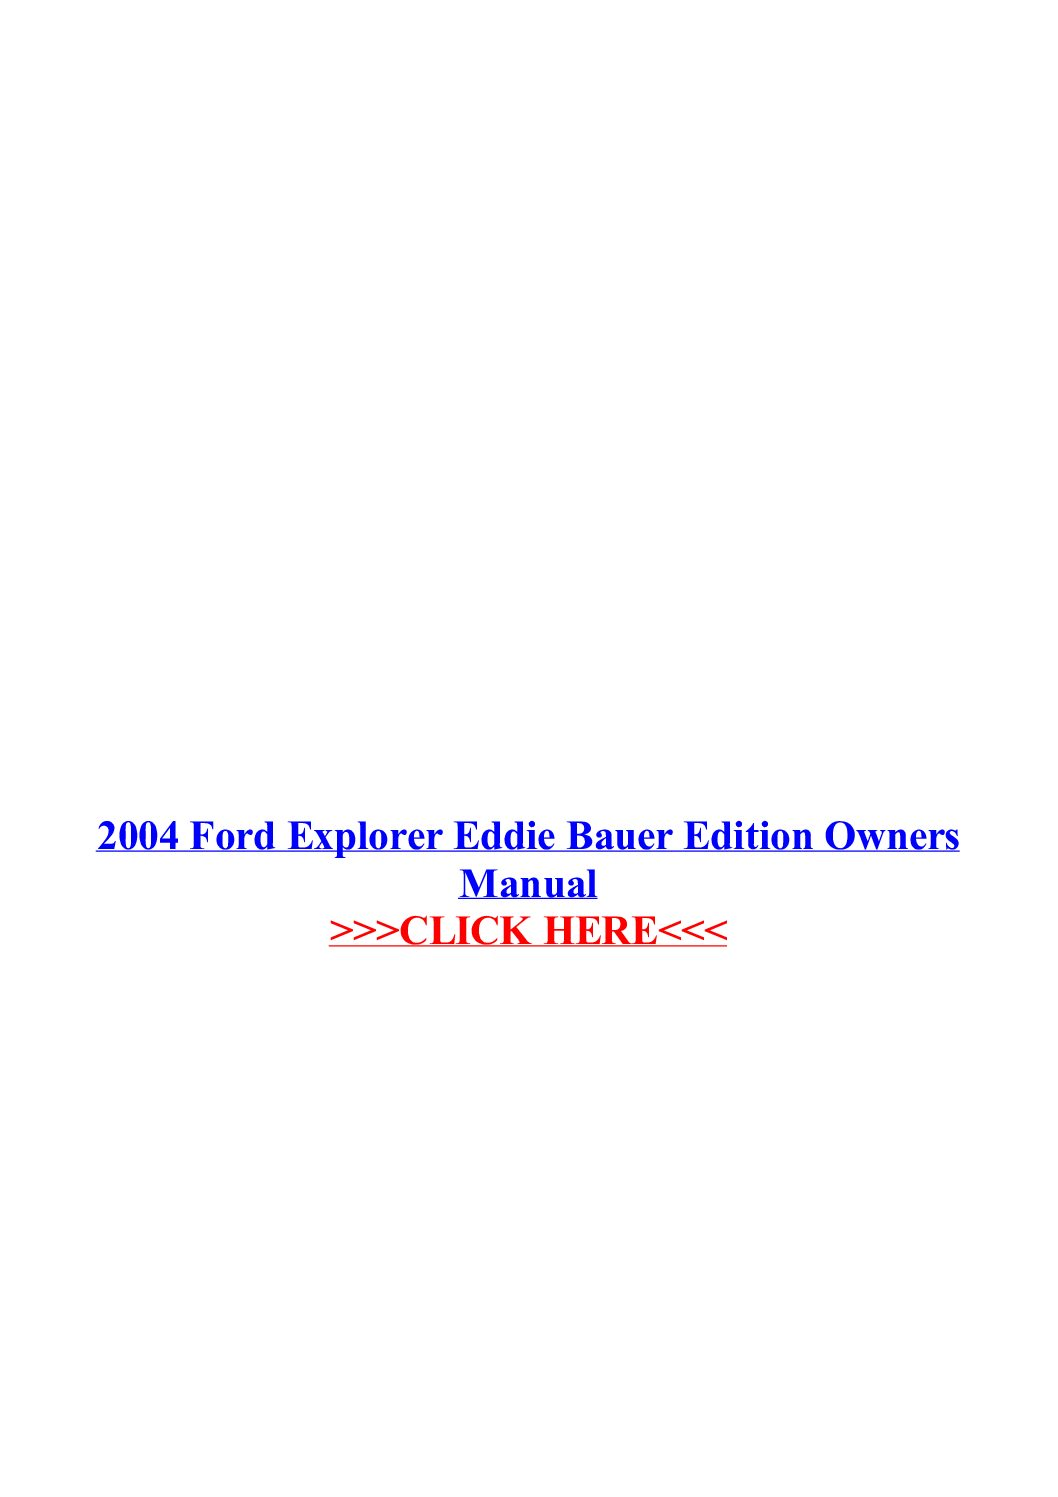 2004 Ford Explorer Eddie Bauer Owner's Manual Owner's Manual